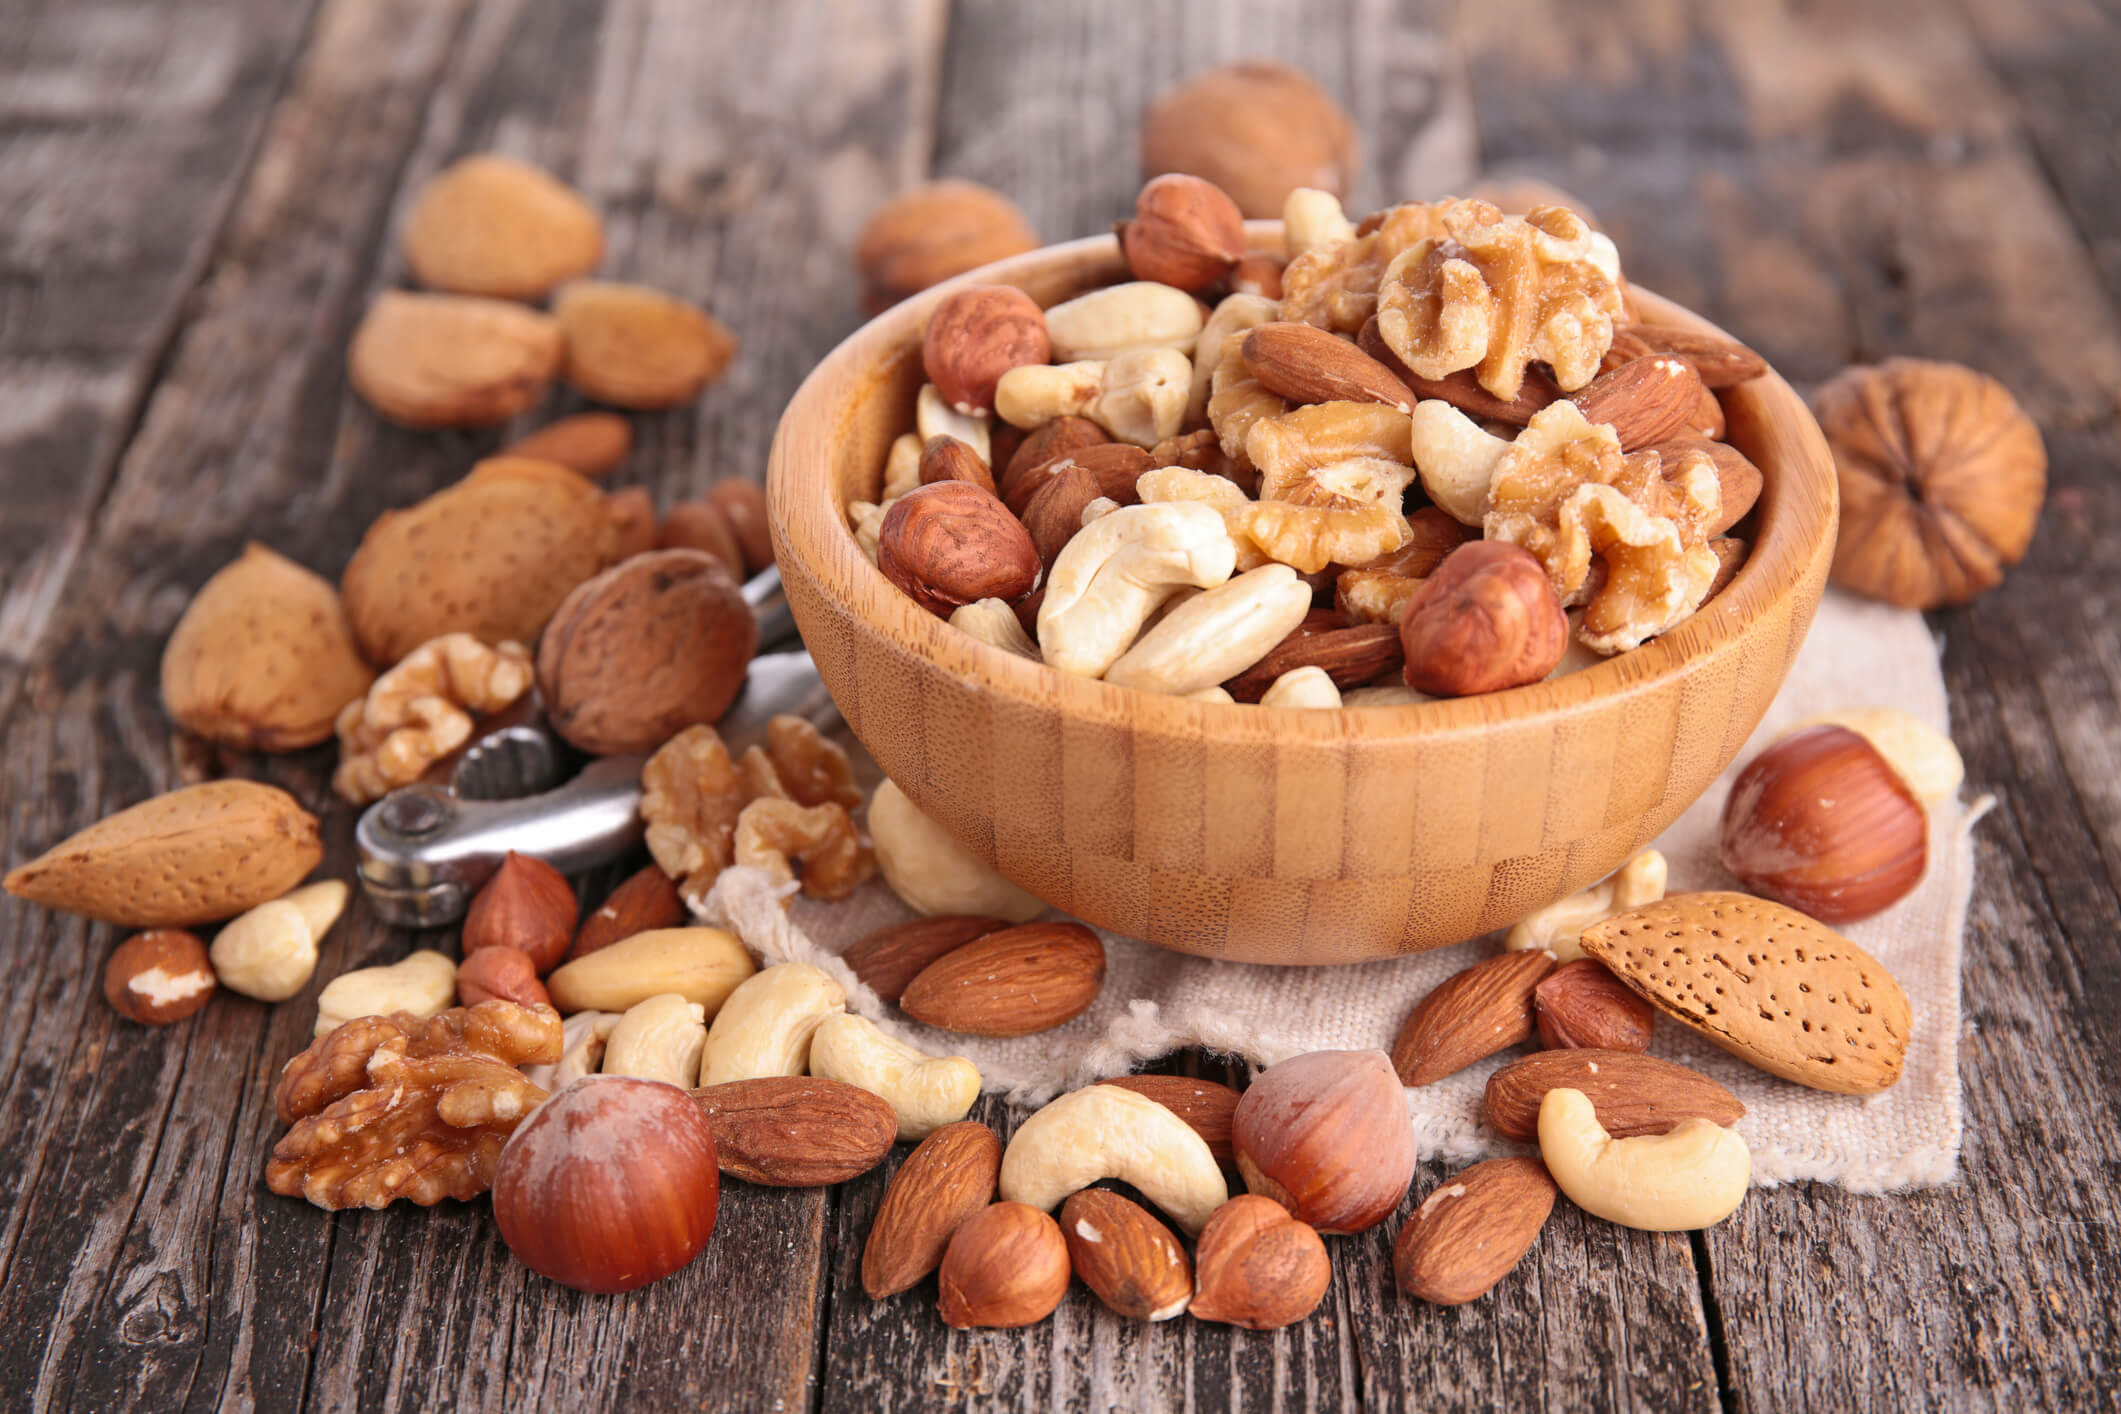 Prevent cancer by eating nuts